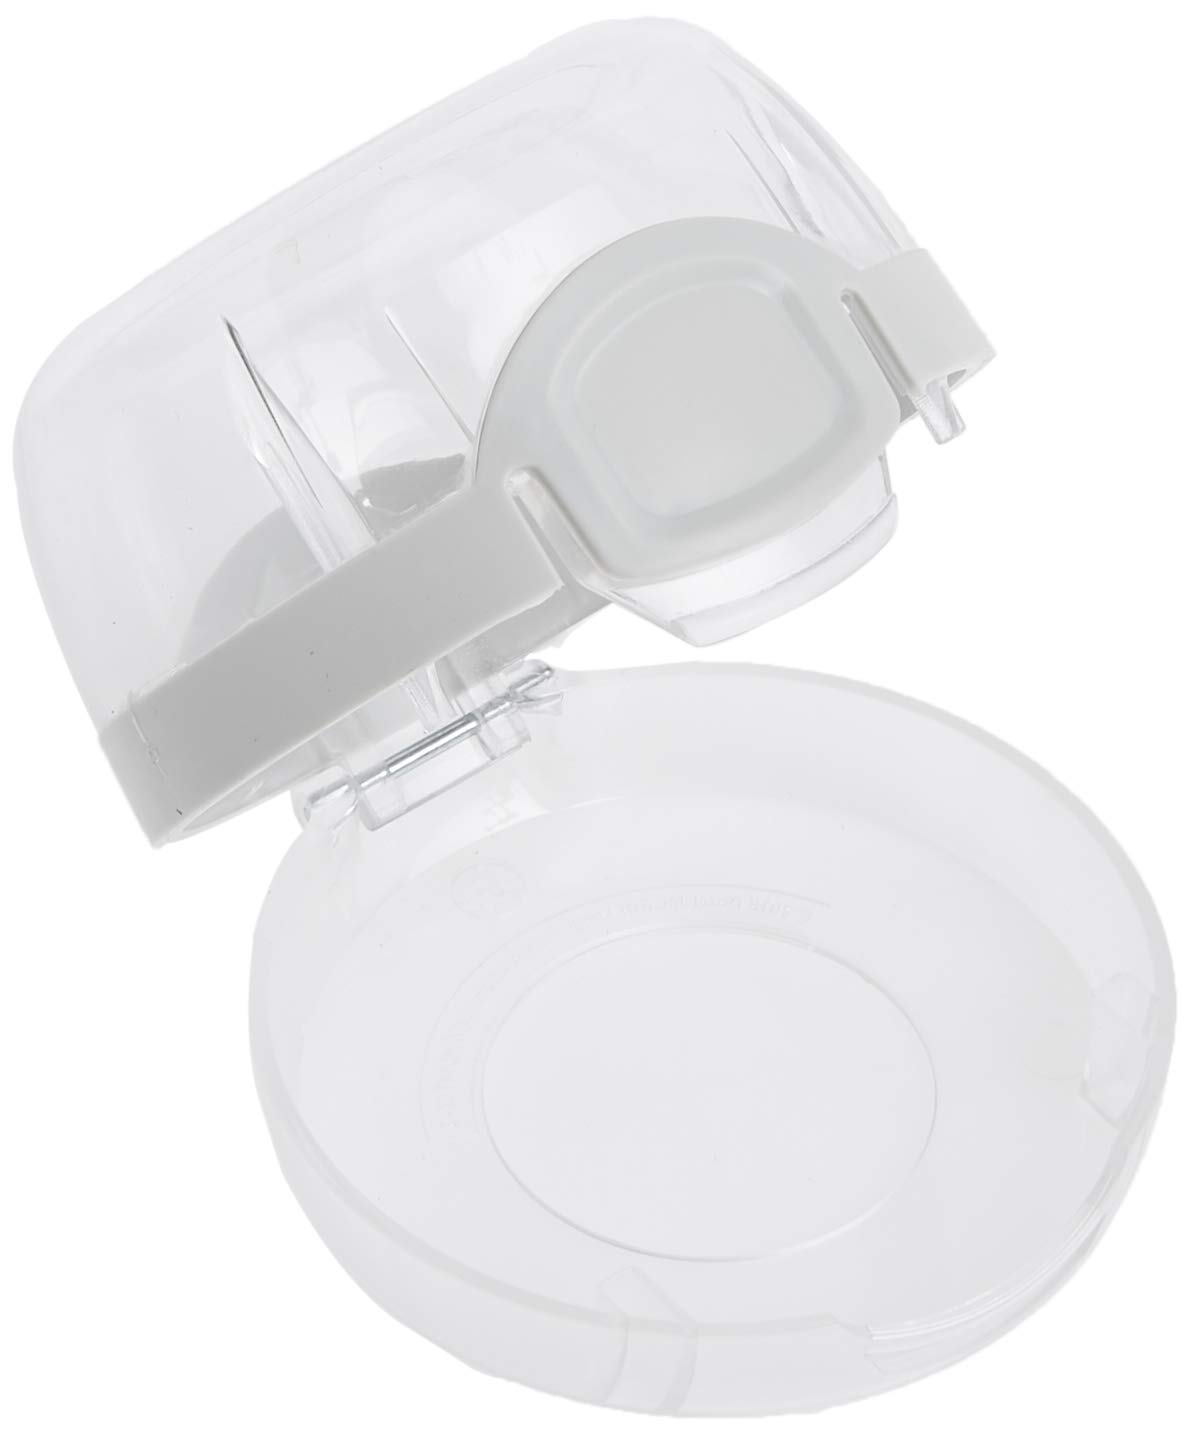 Safety 1st Child Proof Clear View Stove Knob Covers (Set of 5)